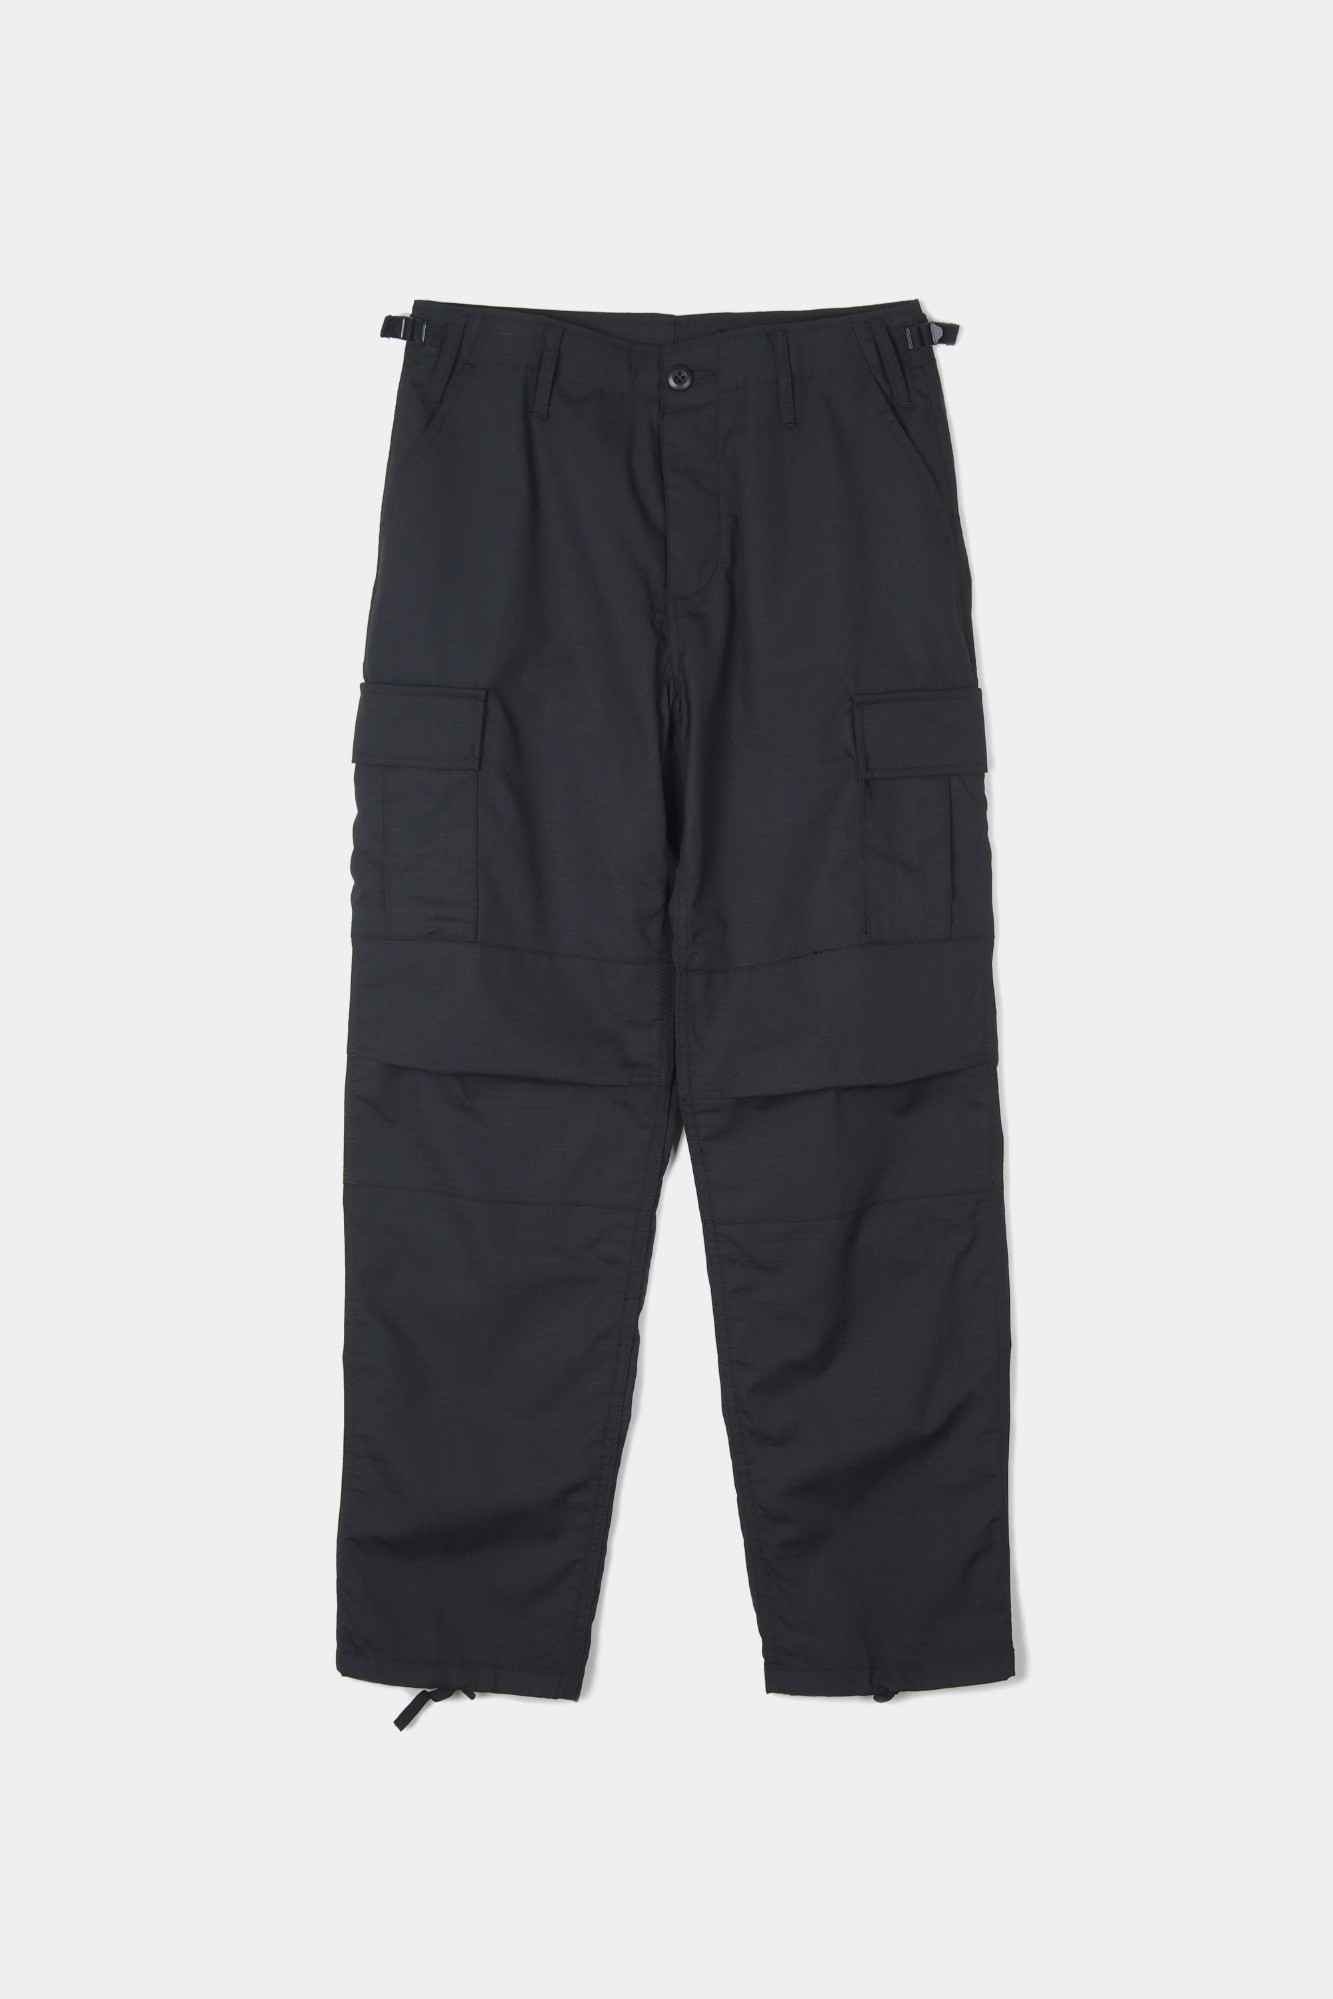 "YMCL KY US Military BDU Ripstop Pants ""Black"""